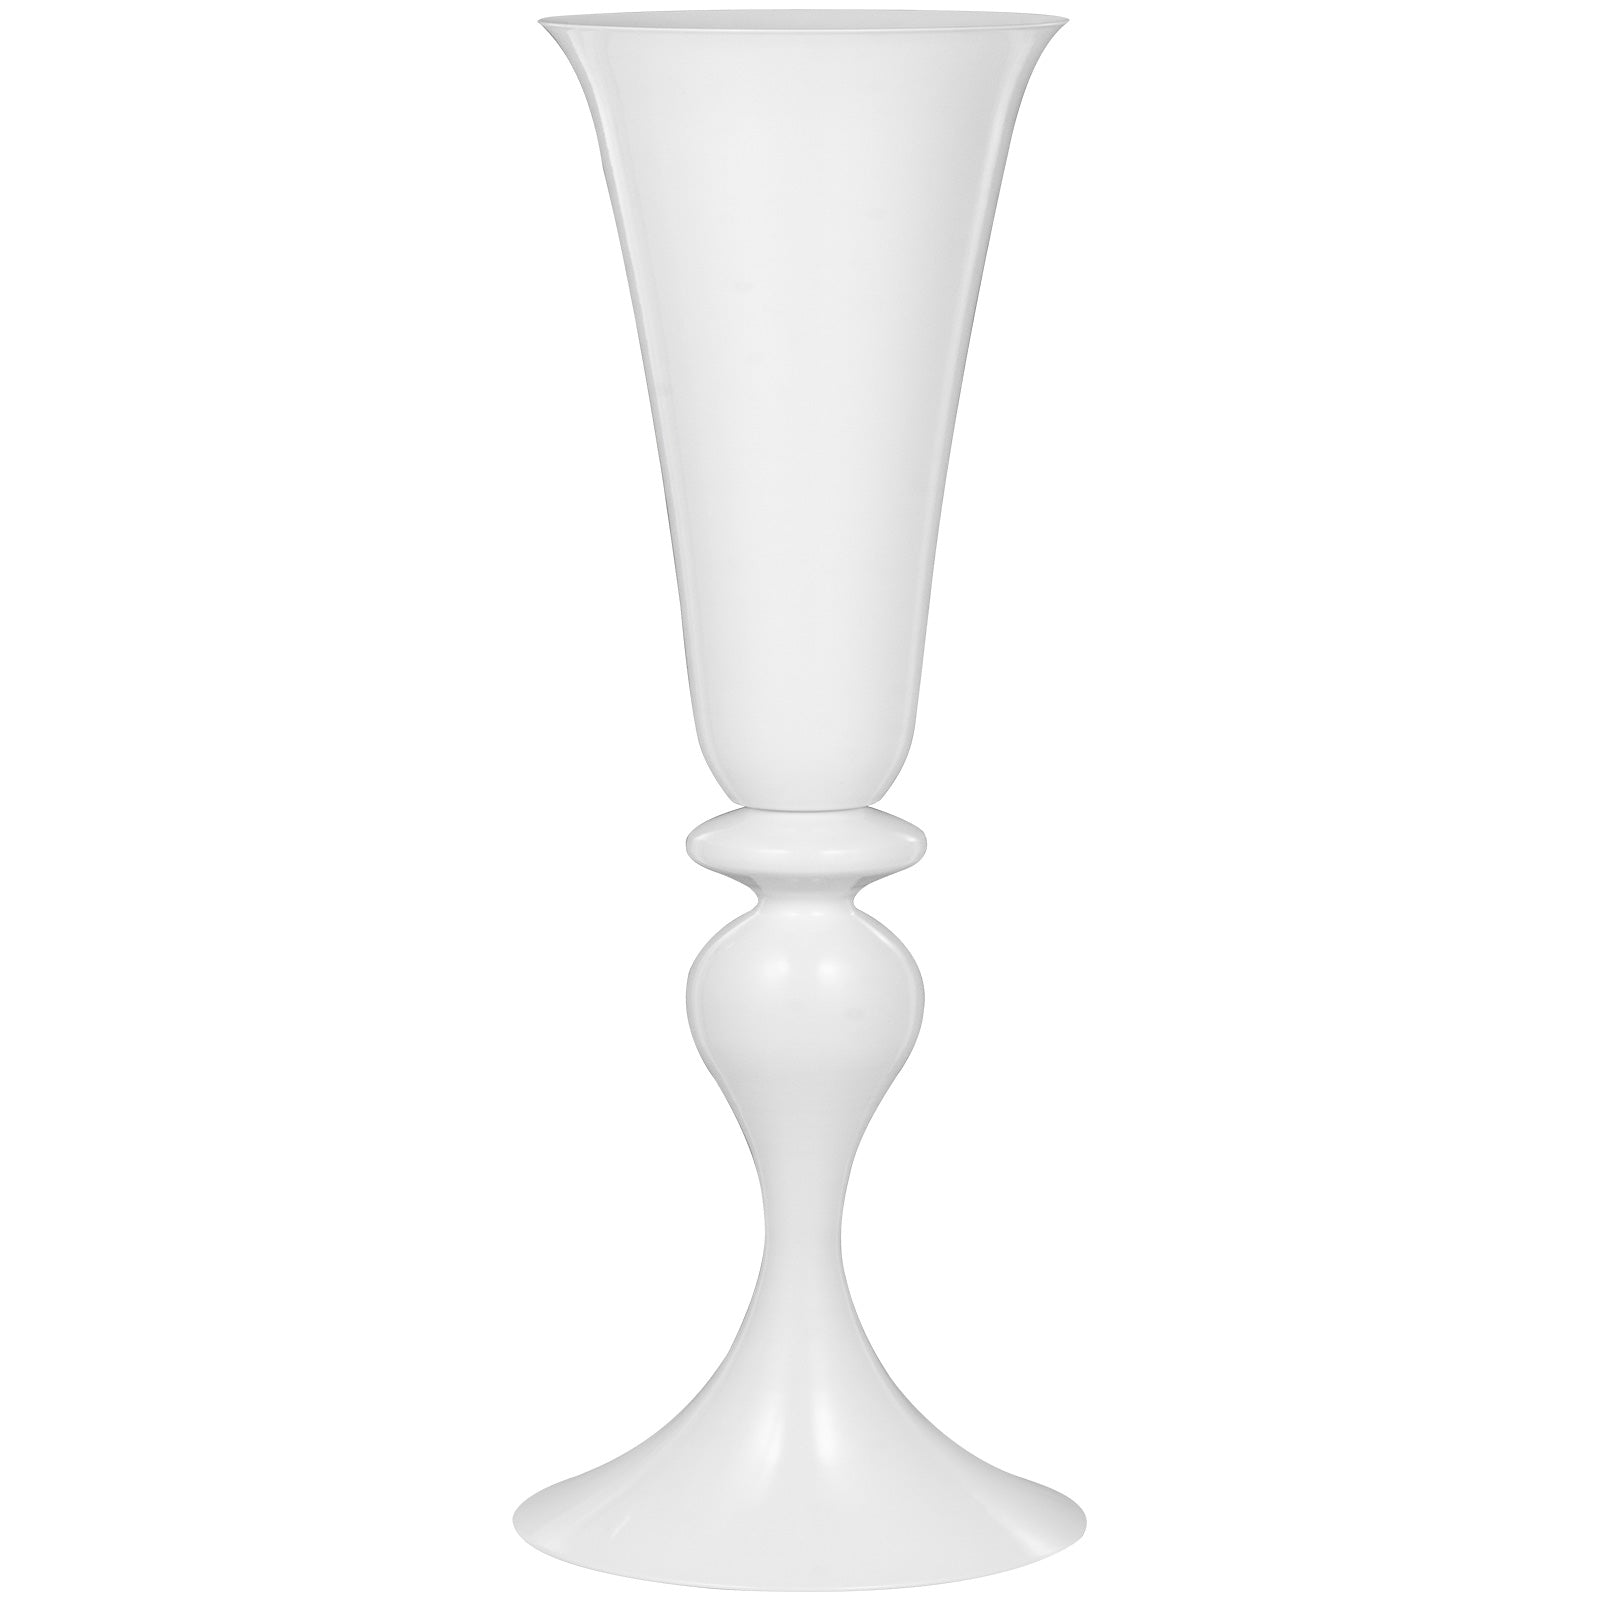 "White Trumpet Vase For Party Celebration Flower Vases Centerpiece 22"" Height"